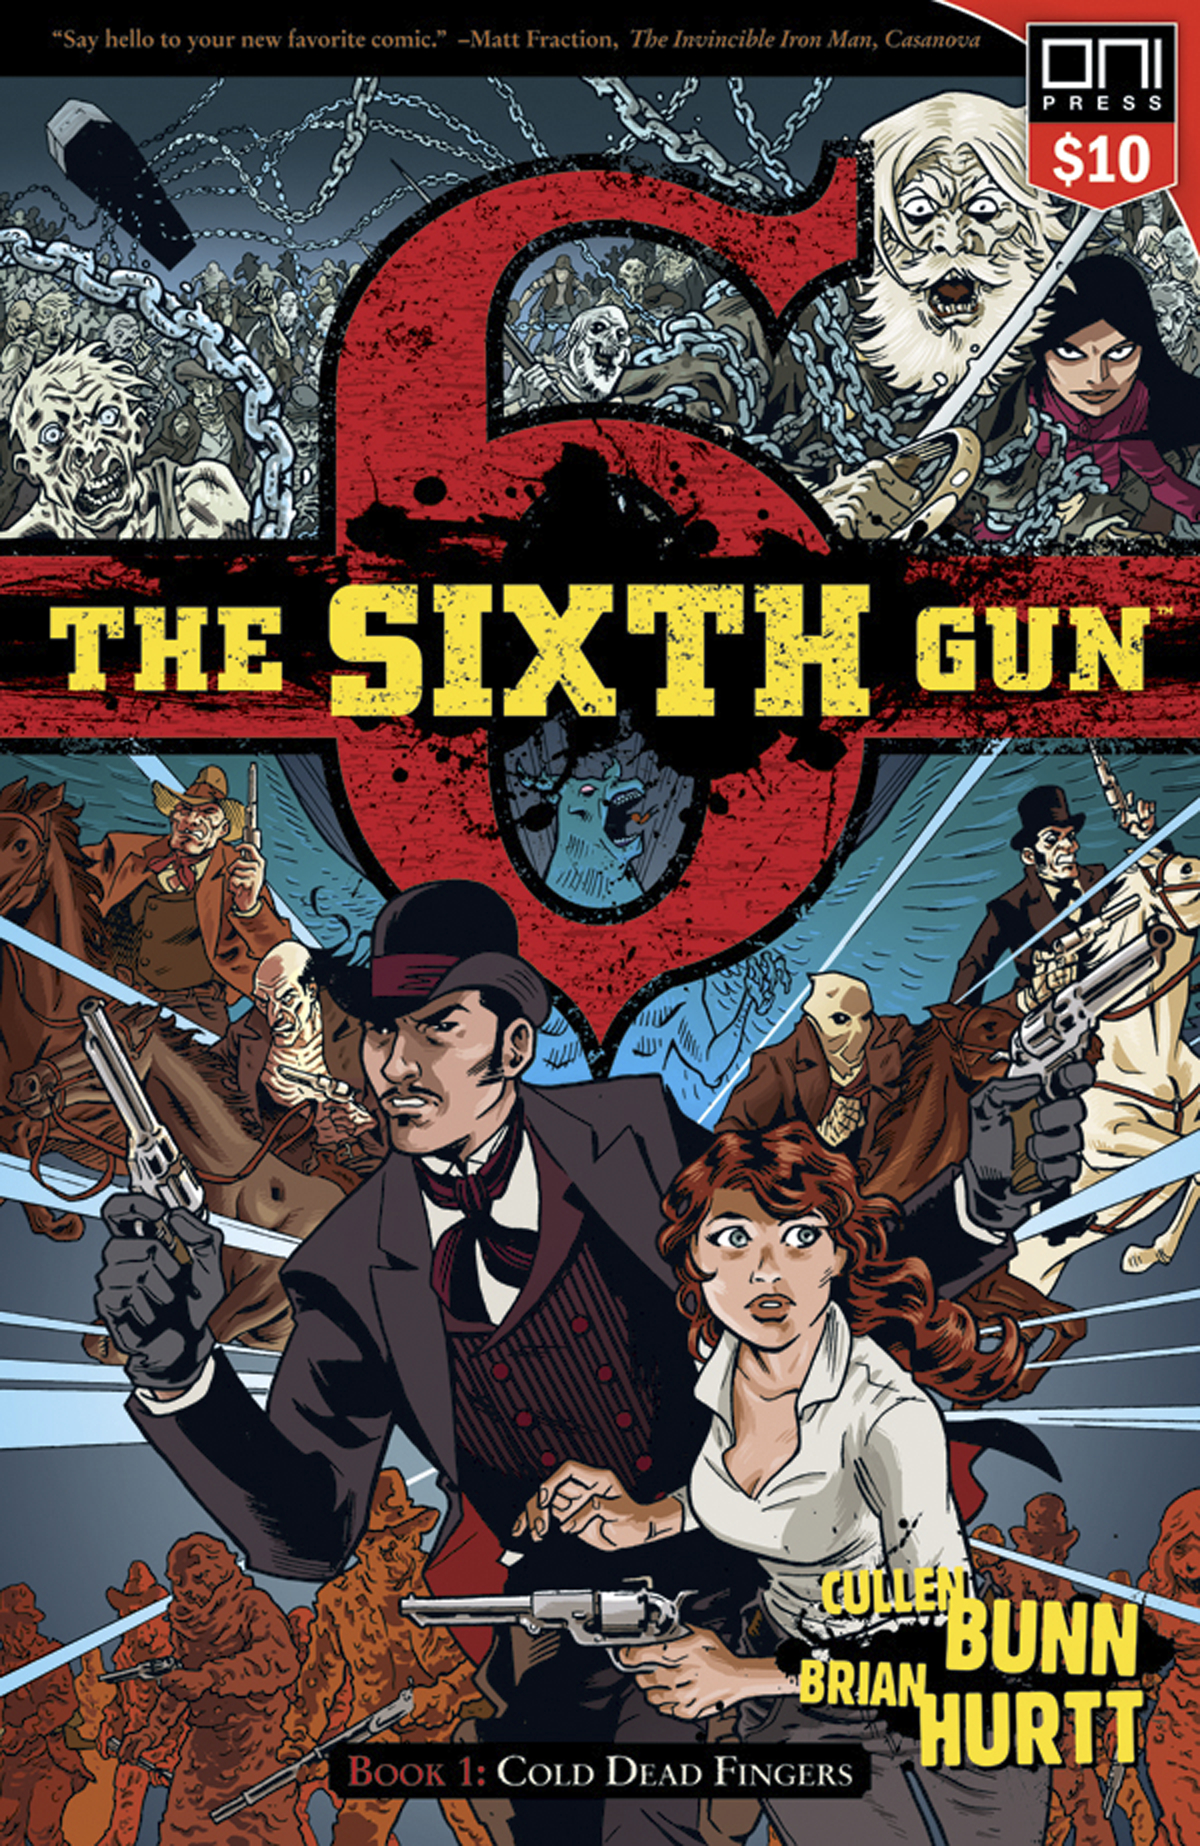 SIXTH GUN TP VOL 01 COLD DEAD FINGERS